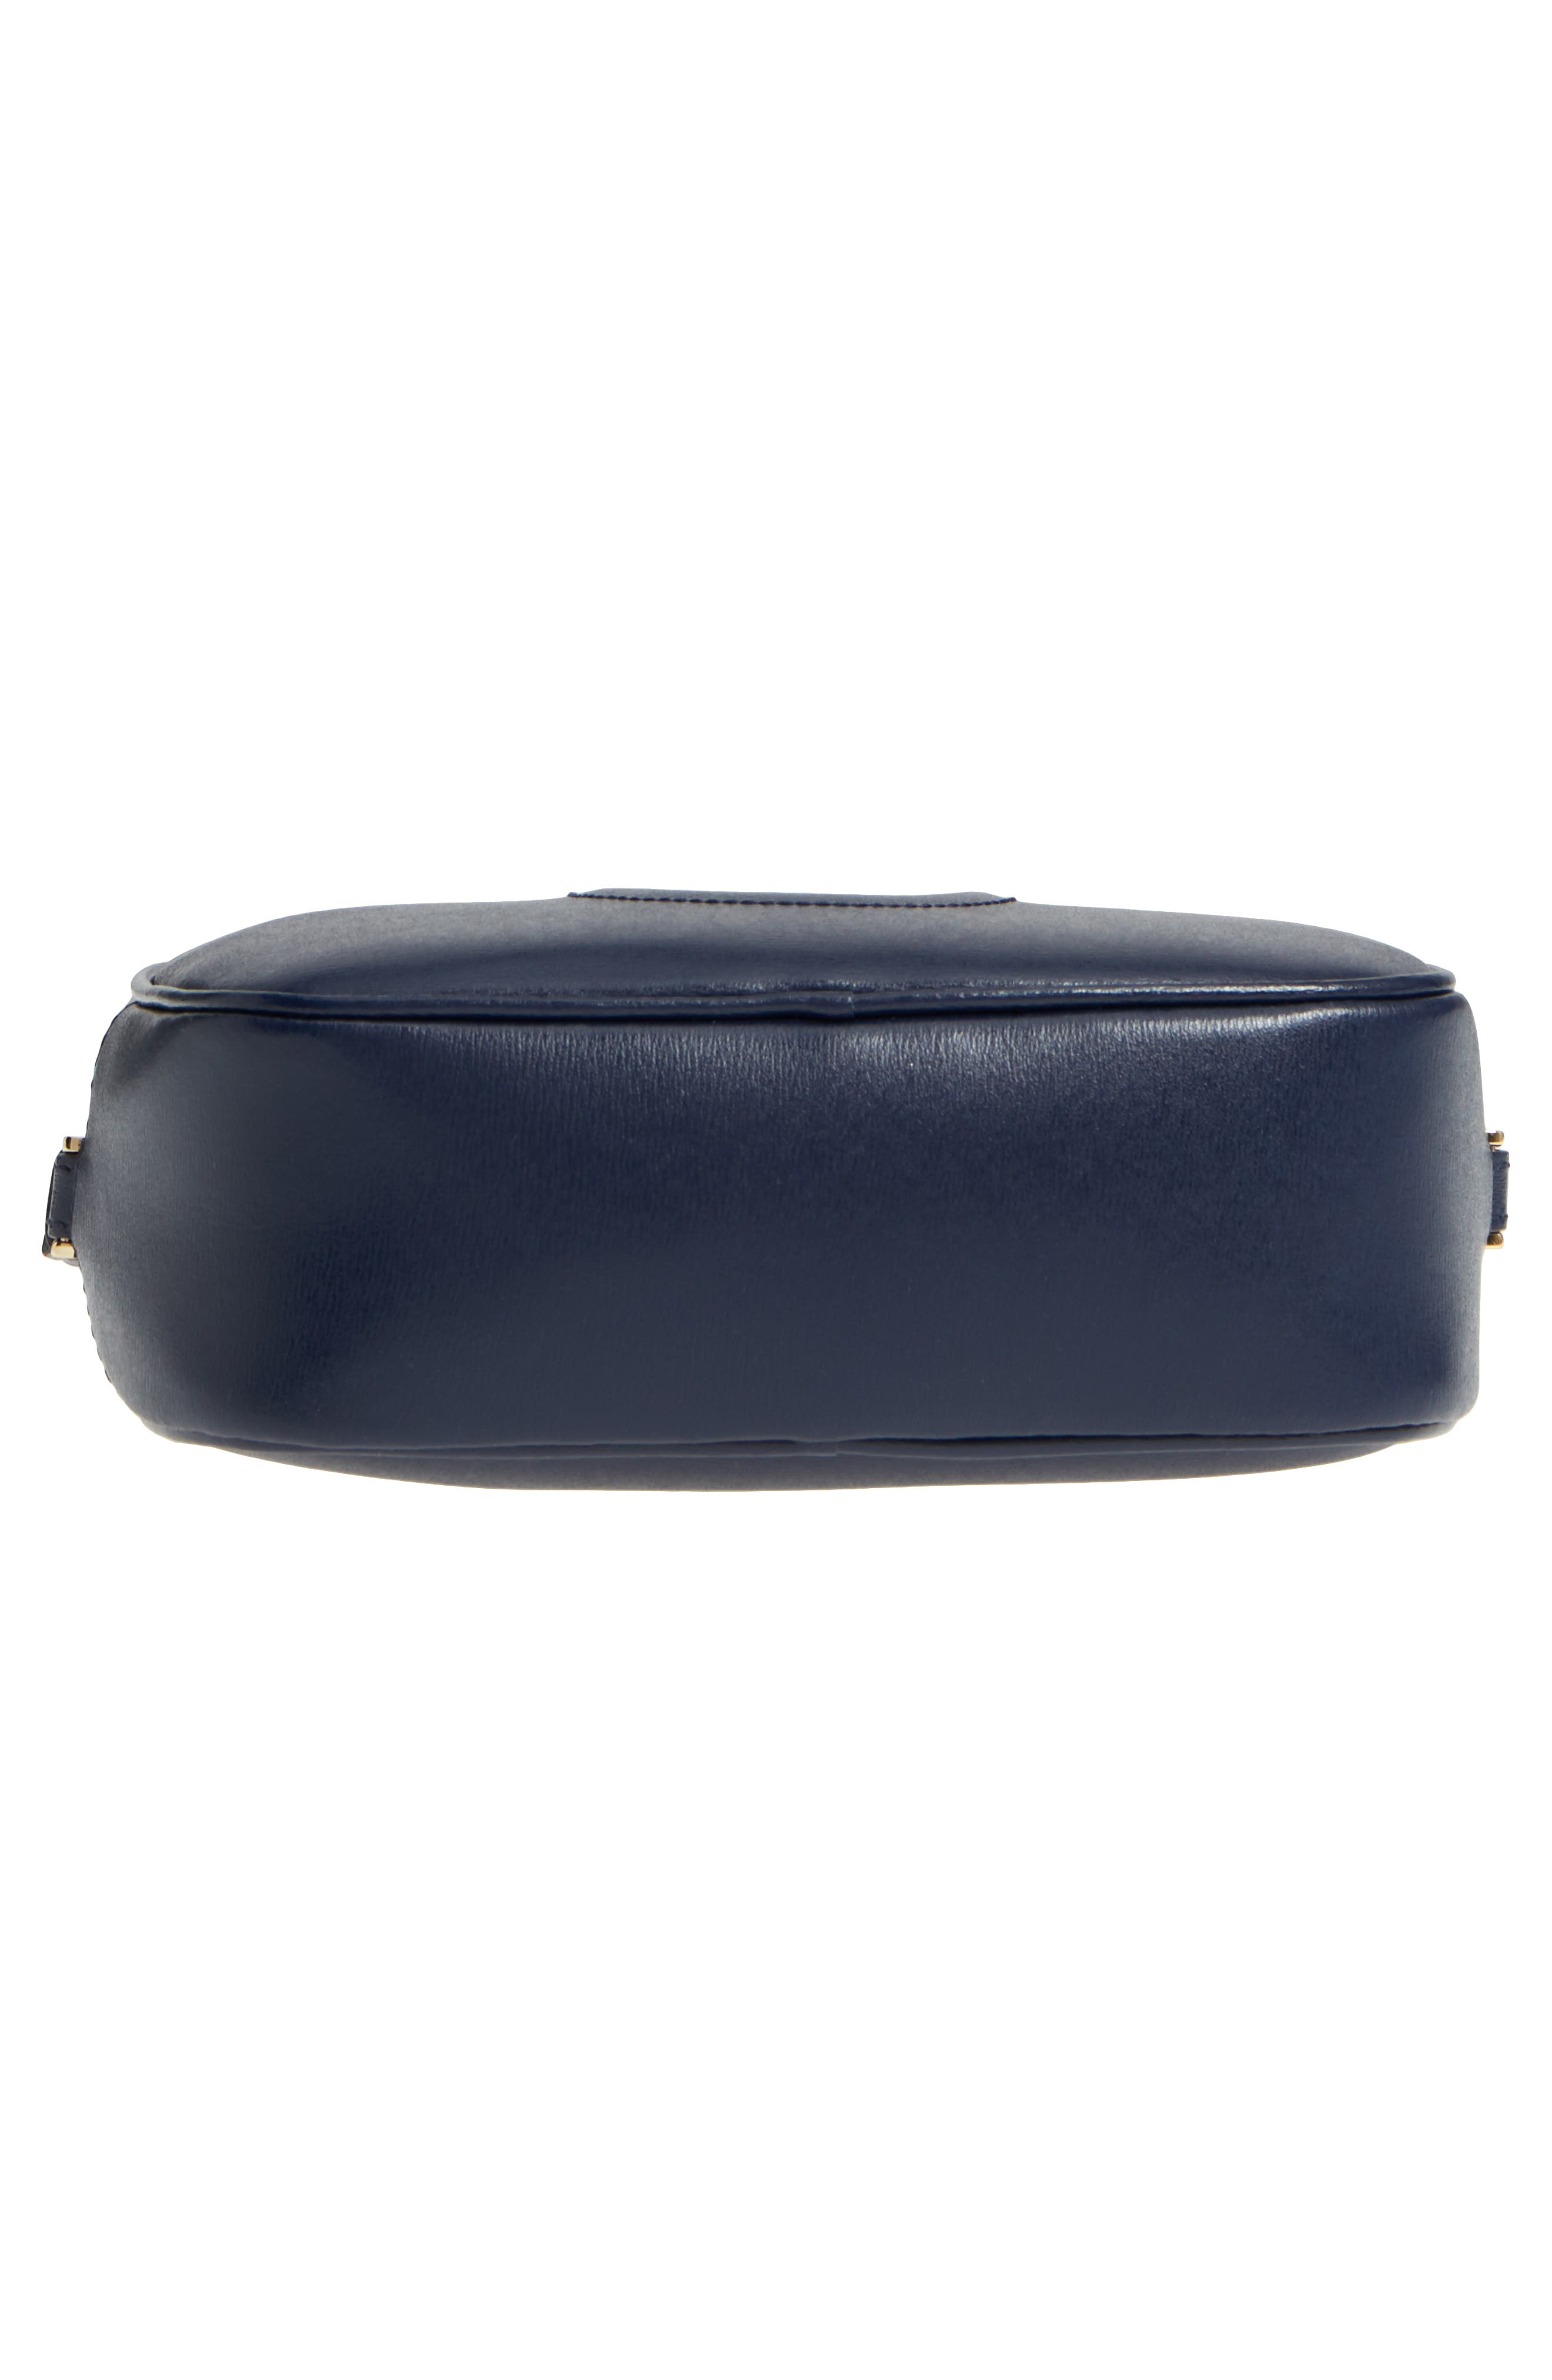 Gancio Metallic Leather Camera Bag,                             Alternate thumbnail 6, color,                             NAVY